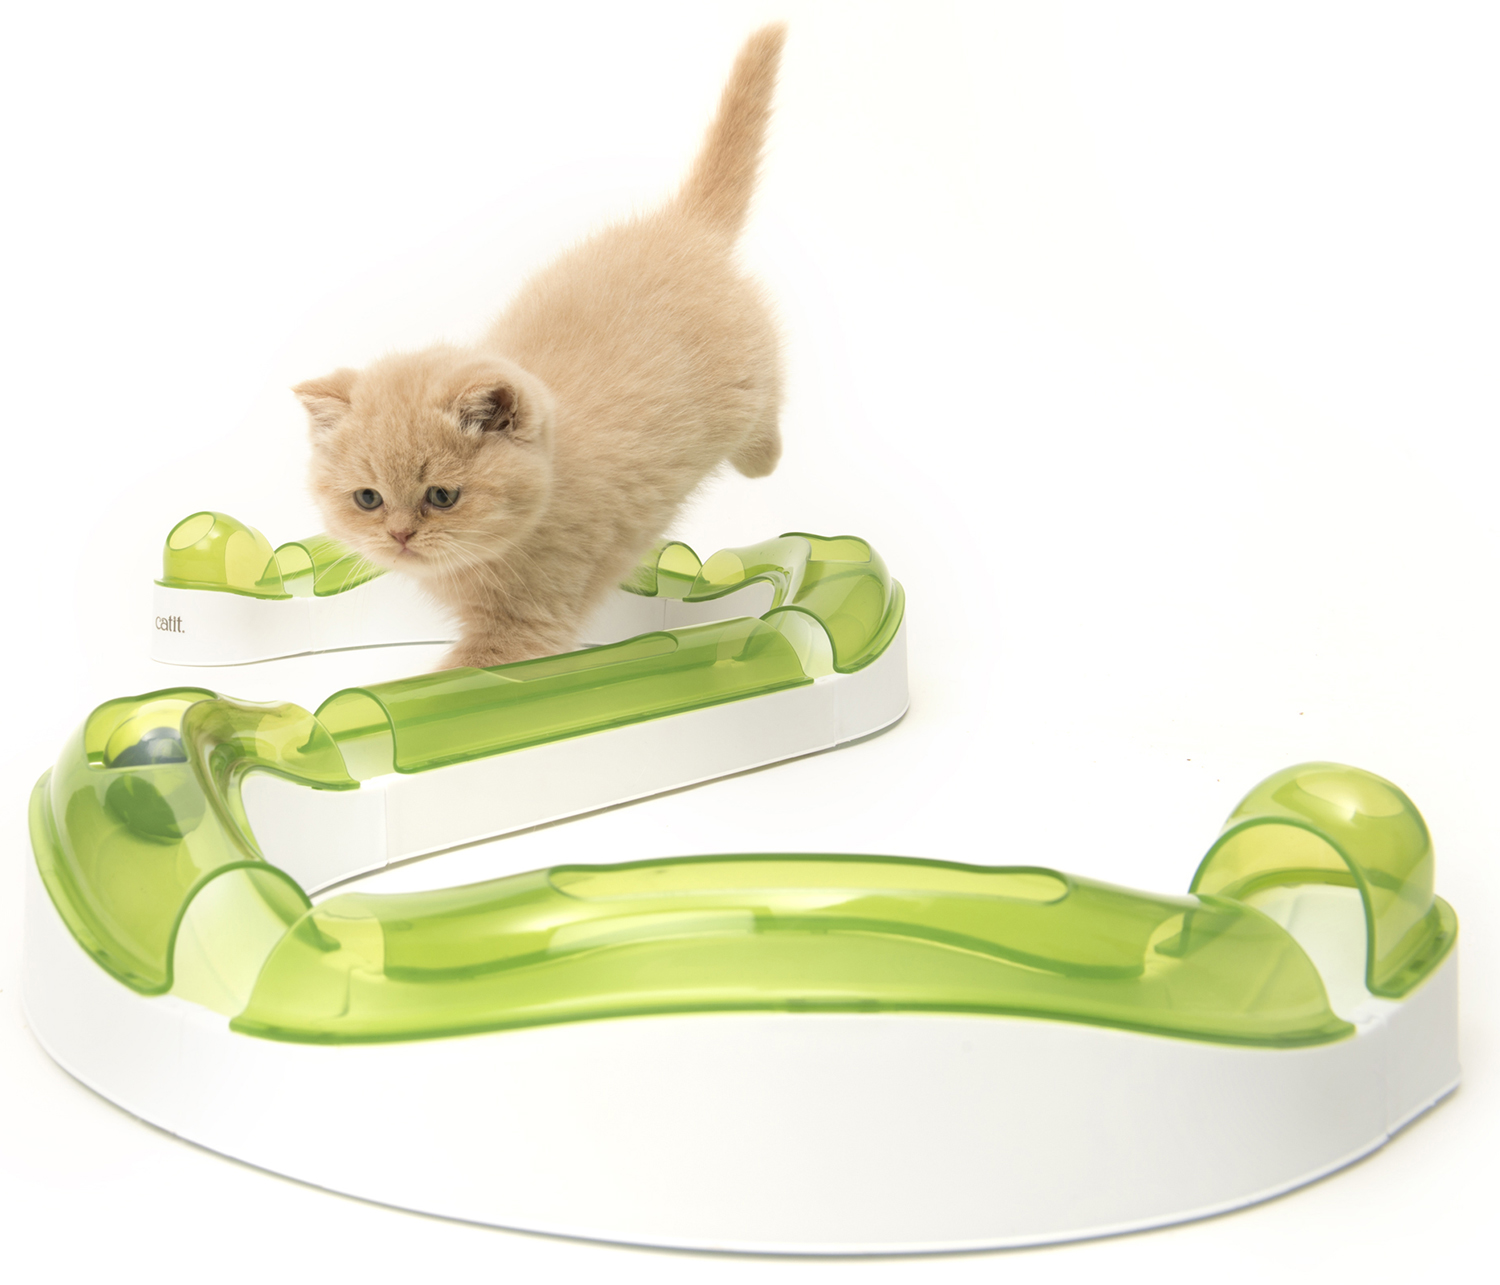 Catit spielschiene wave spielschienen spiel for Aquaristik katalog